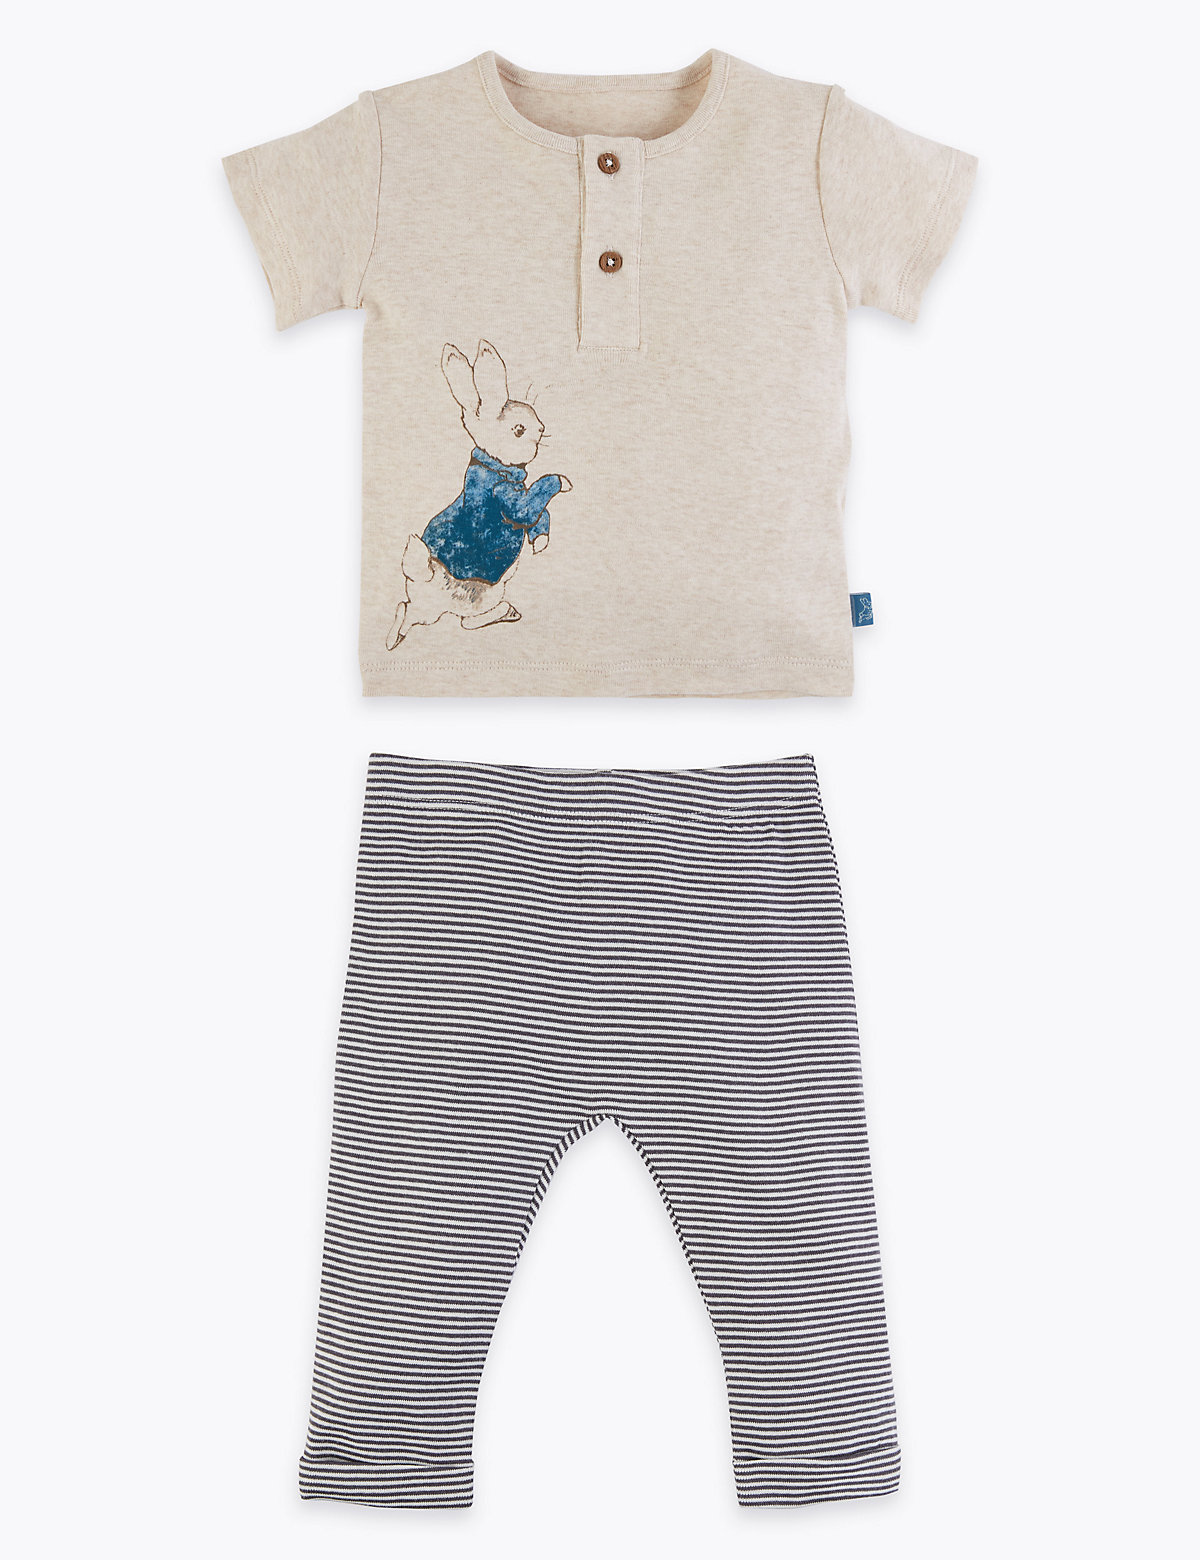 2 Piece Pure Cotton Peter Rabbit Outfit (7lbs-36 Mths)